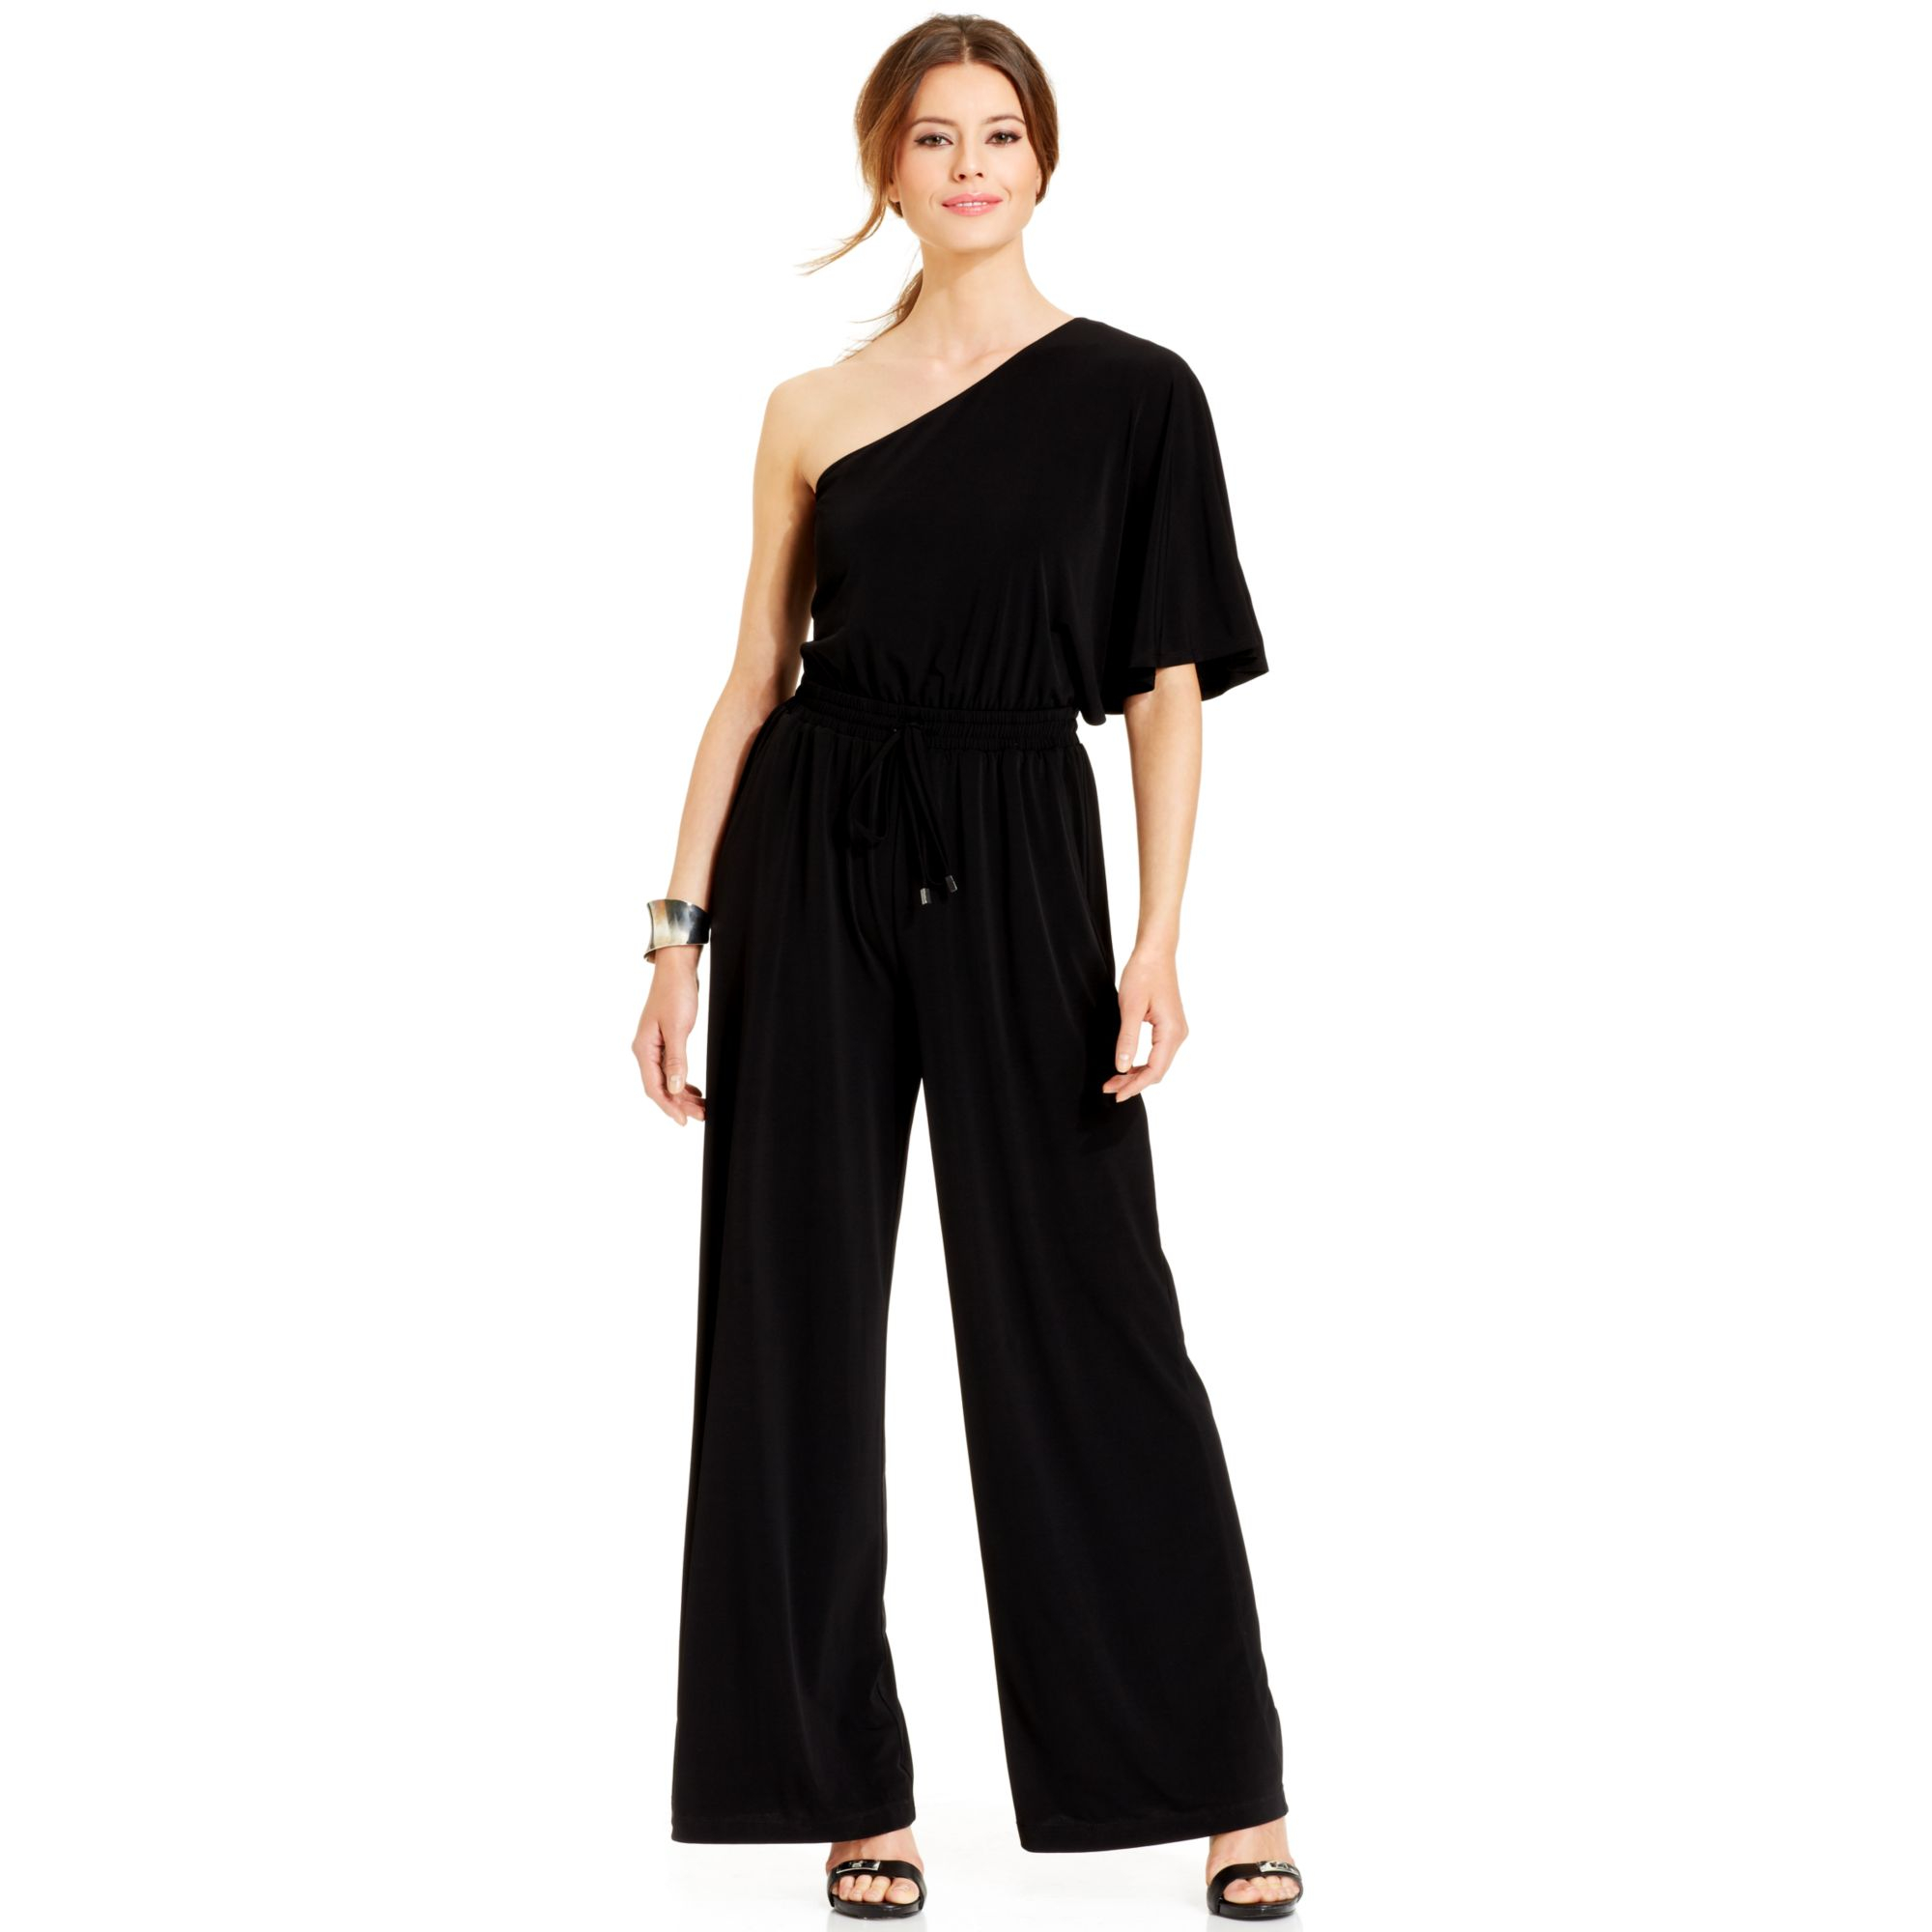 9273a281ba9 Lyst - Vince Camuto Wide Leg One Shoulder Jumpsuit in Black